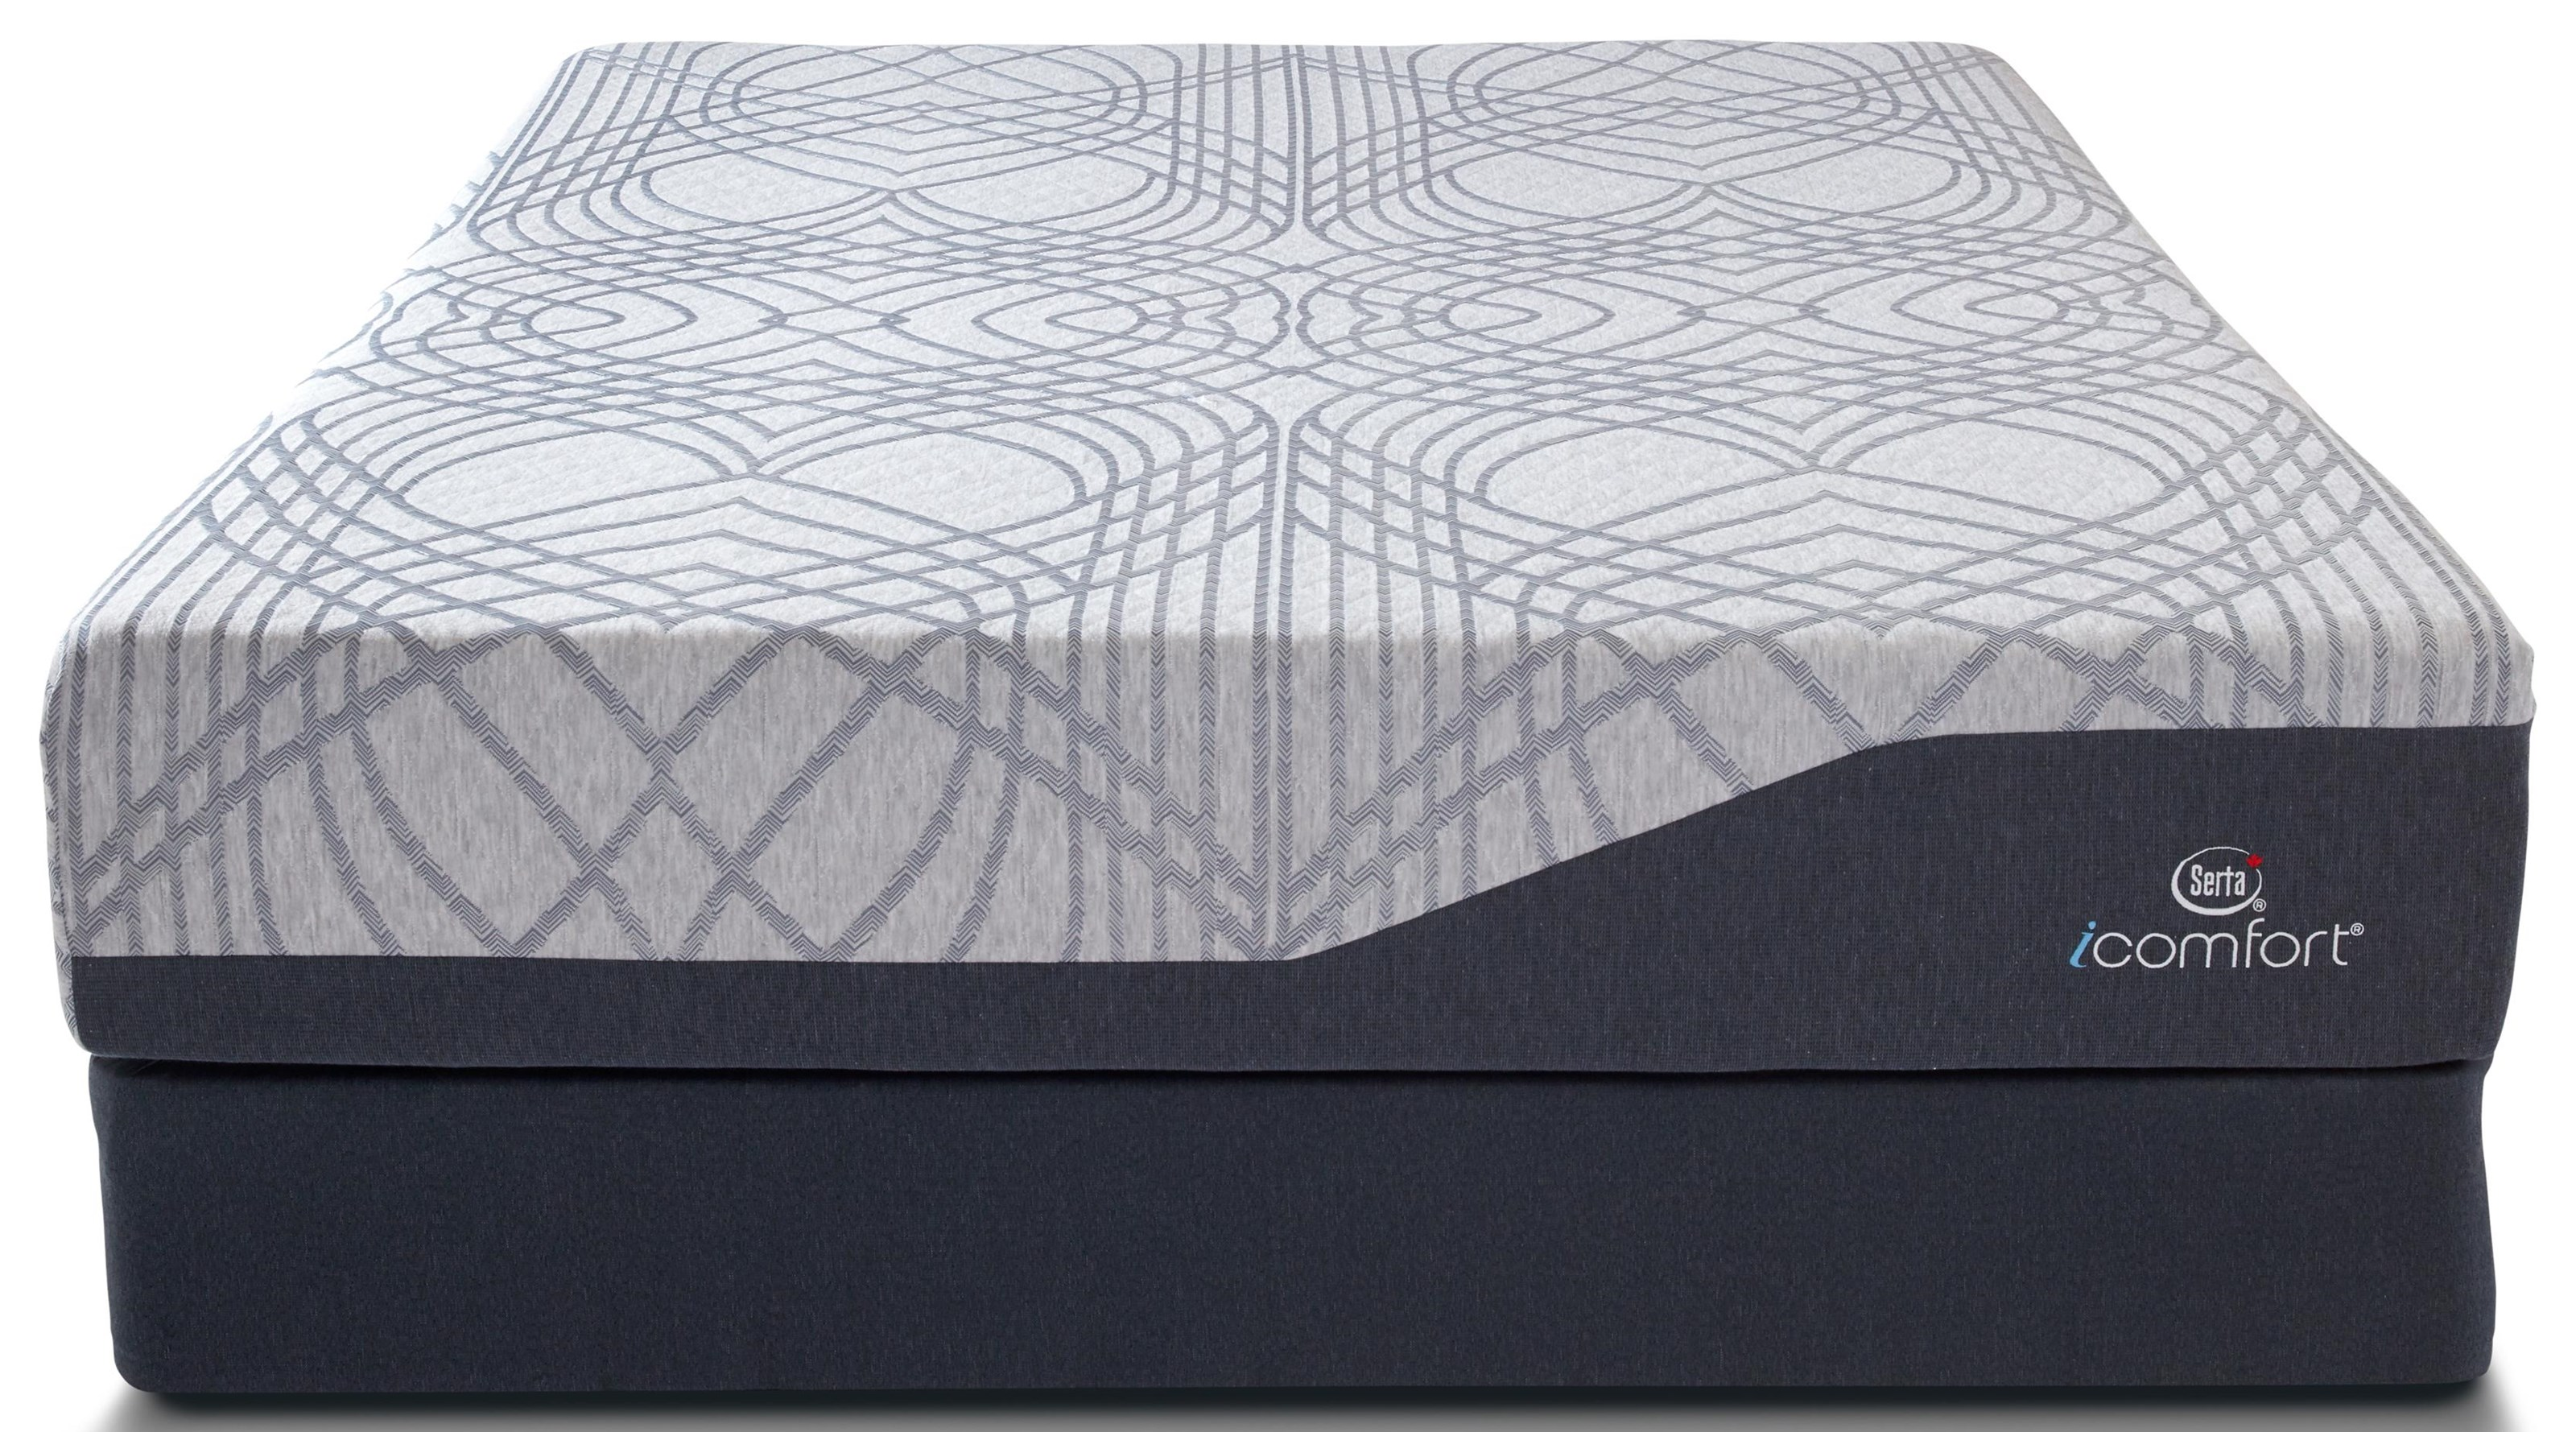 Finesse QN FINESSE I-COMFORT MATTRESS by Serta Canada at Stoney Creek Furniture